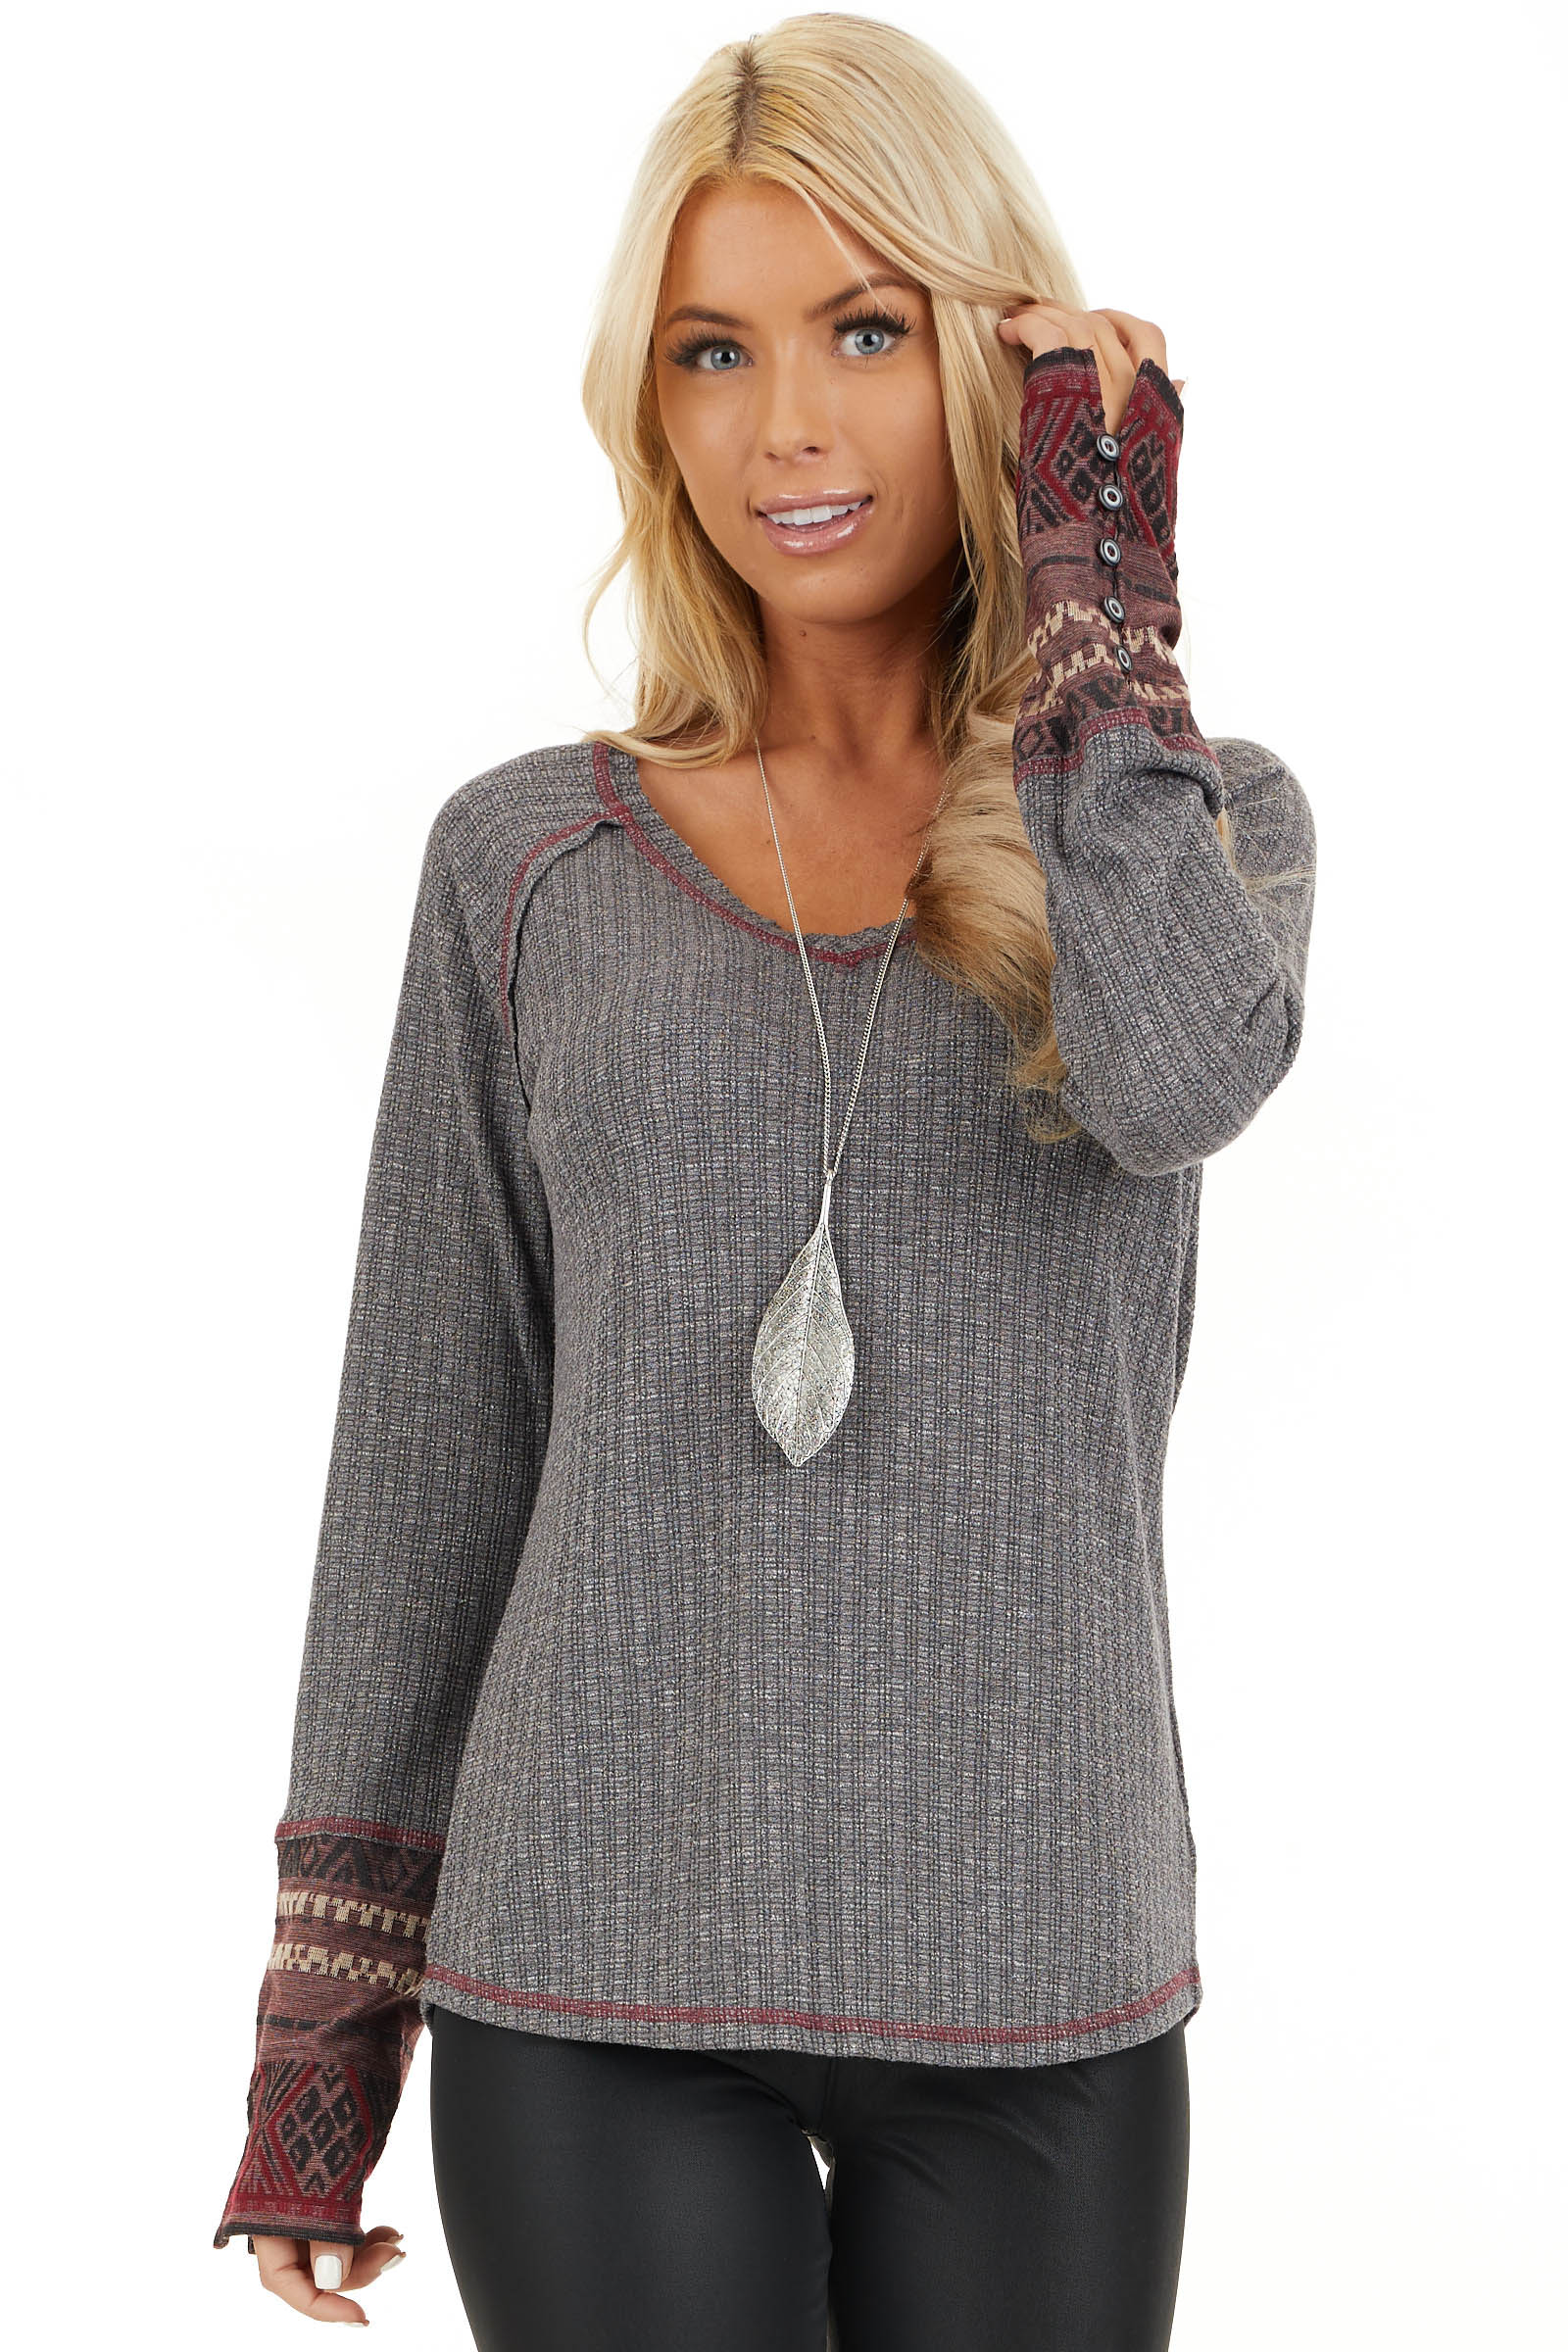 Charcoal Knit Long Sleeve Top with Aztec Print Contrast front close up